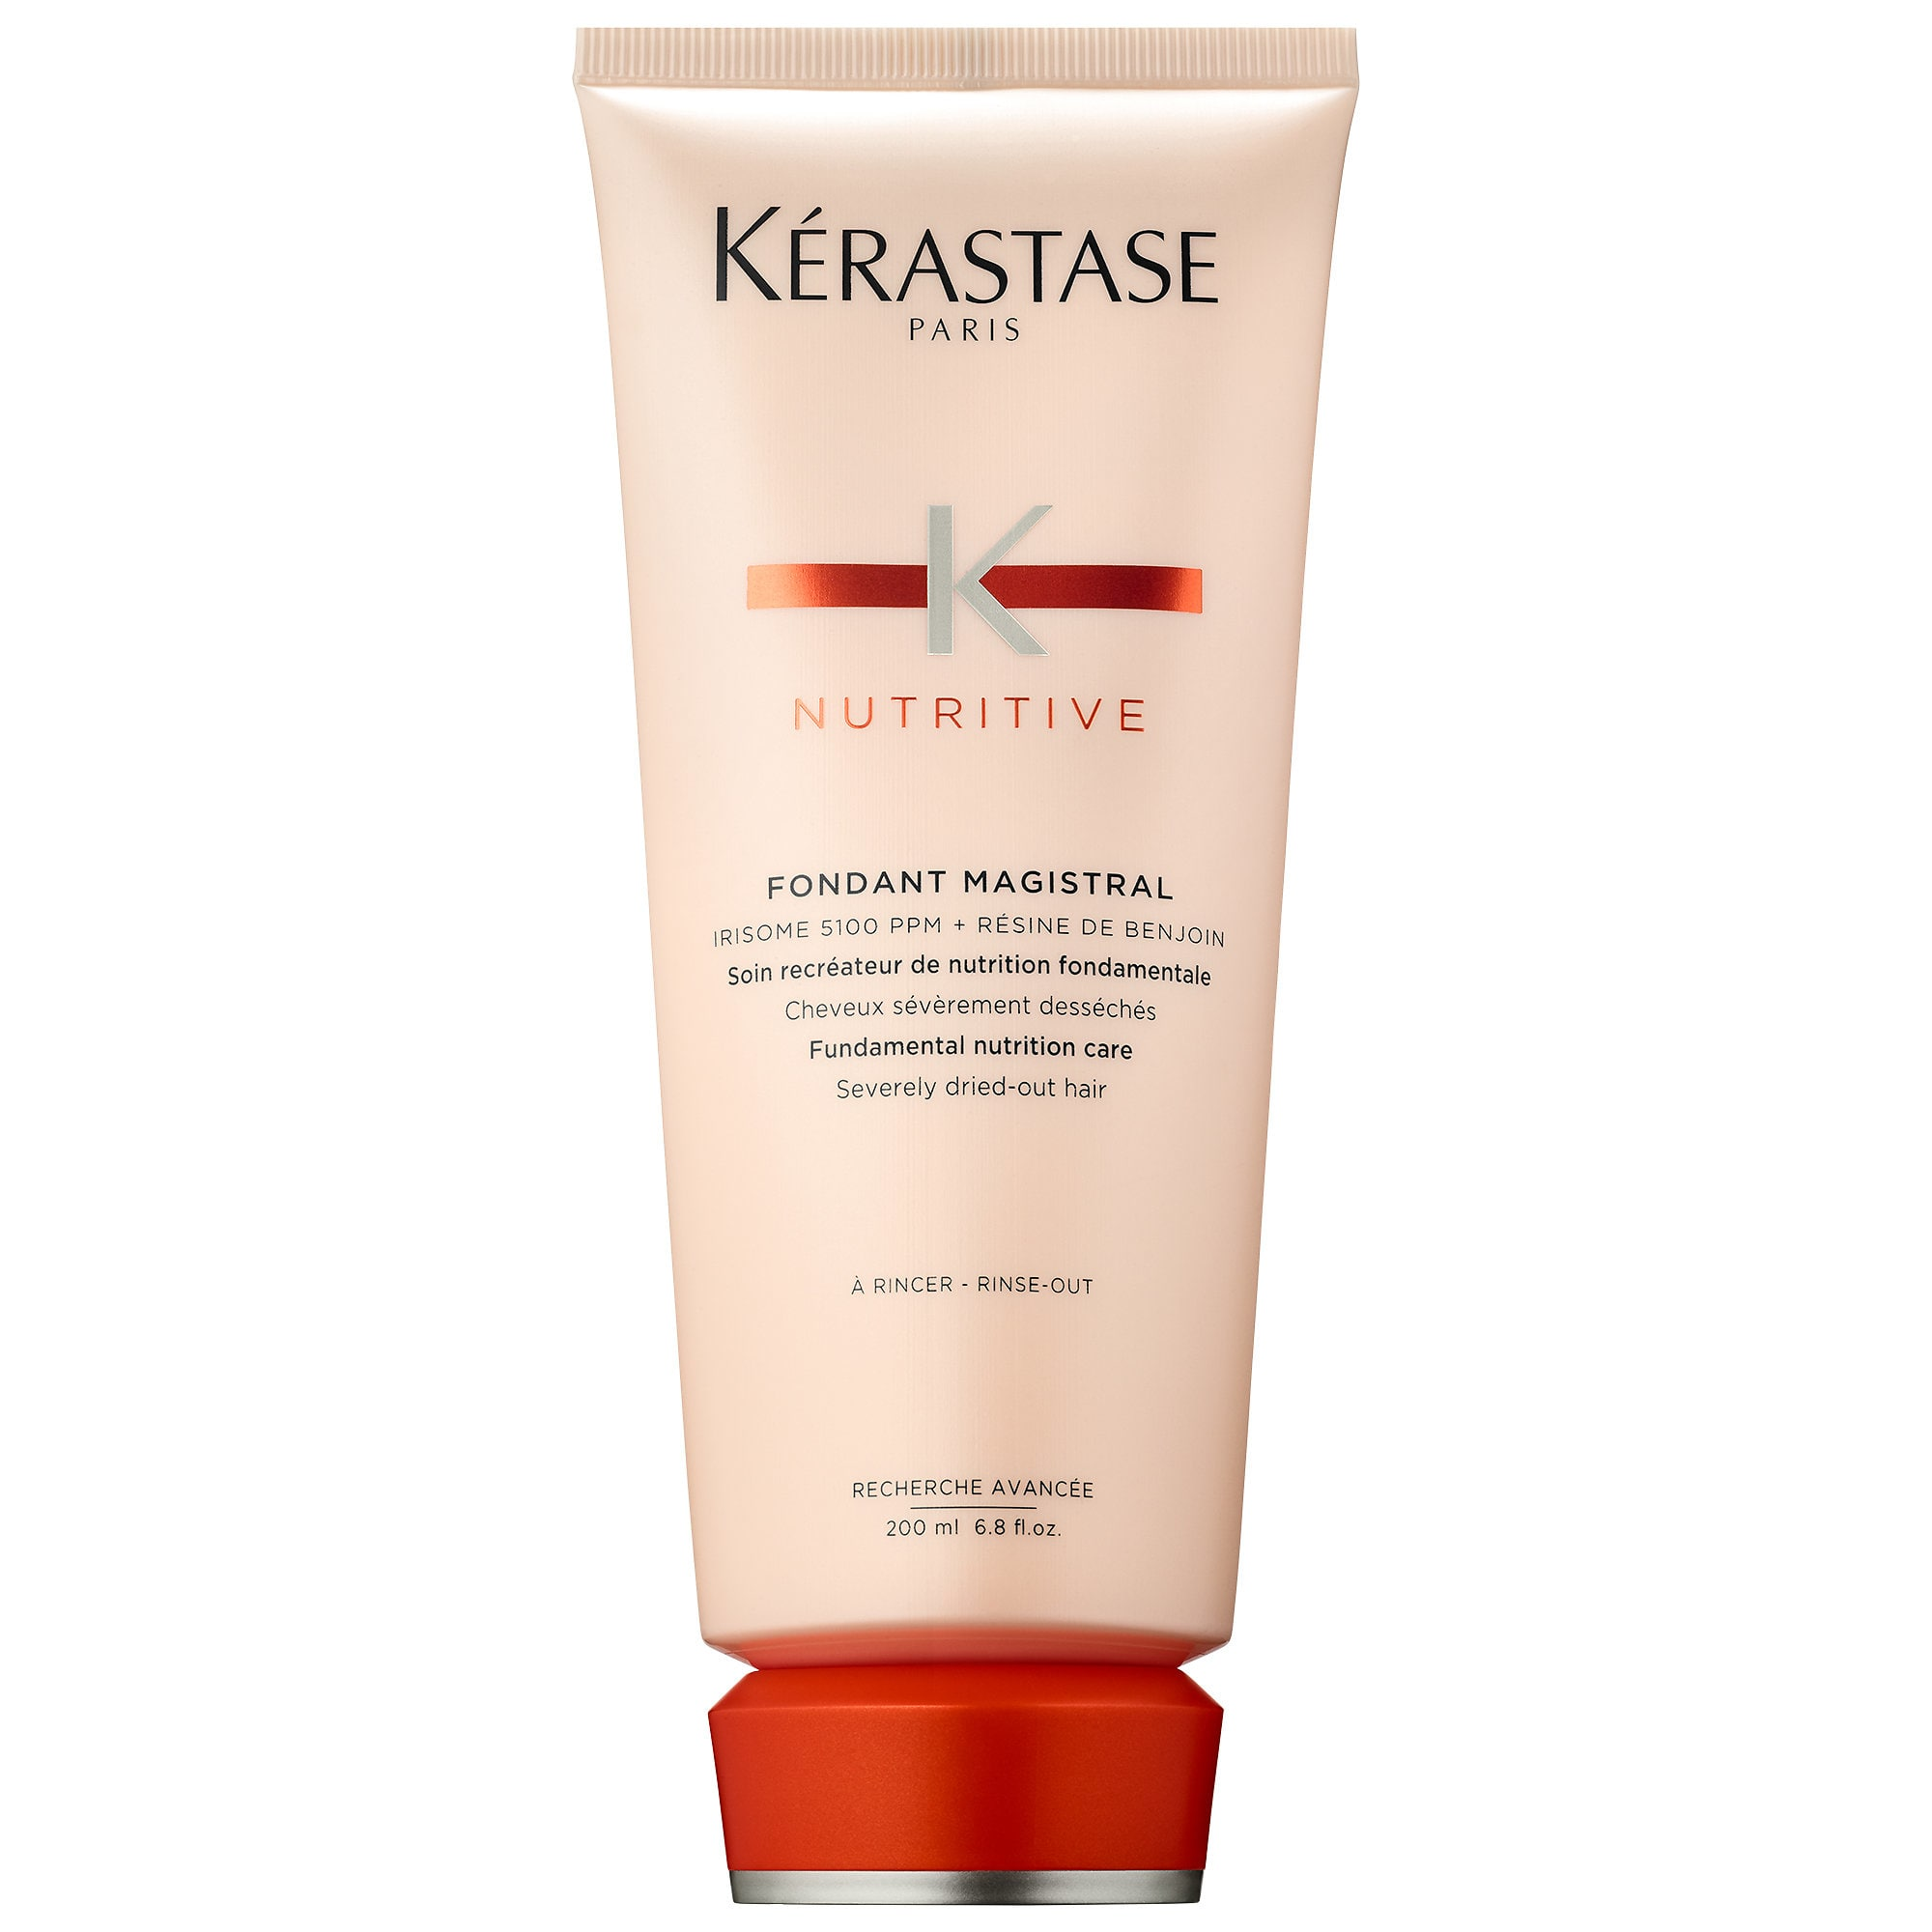 Nutritive Conditioner for Severely Dry Hair